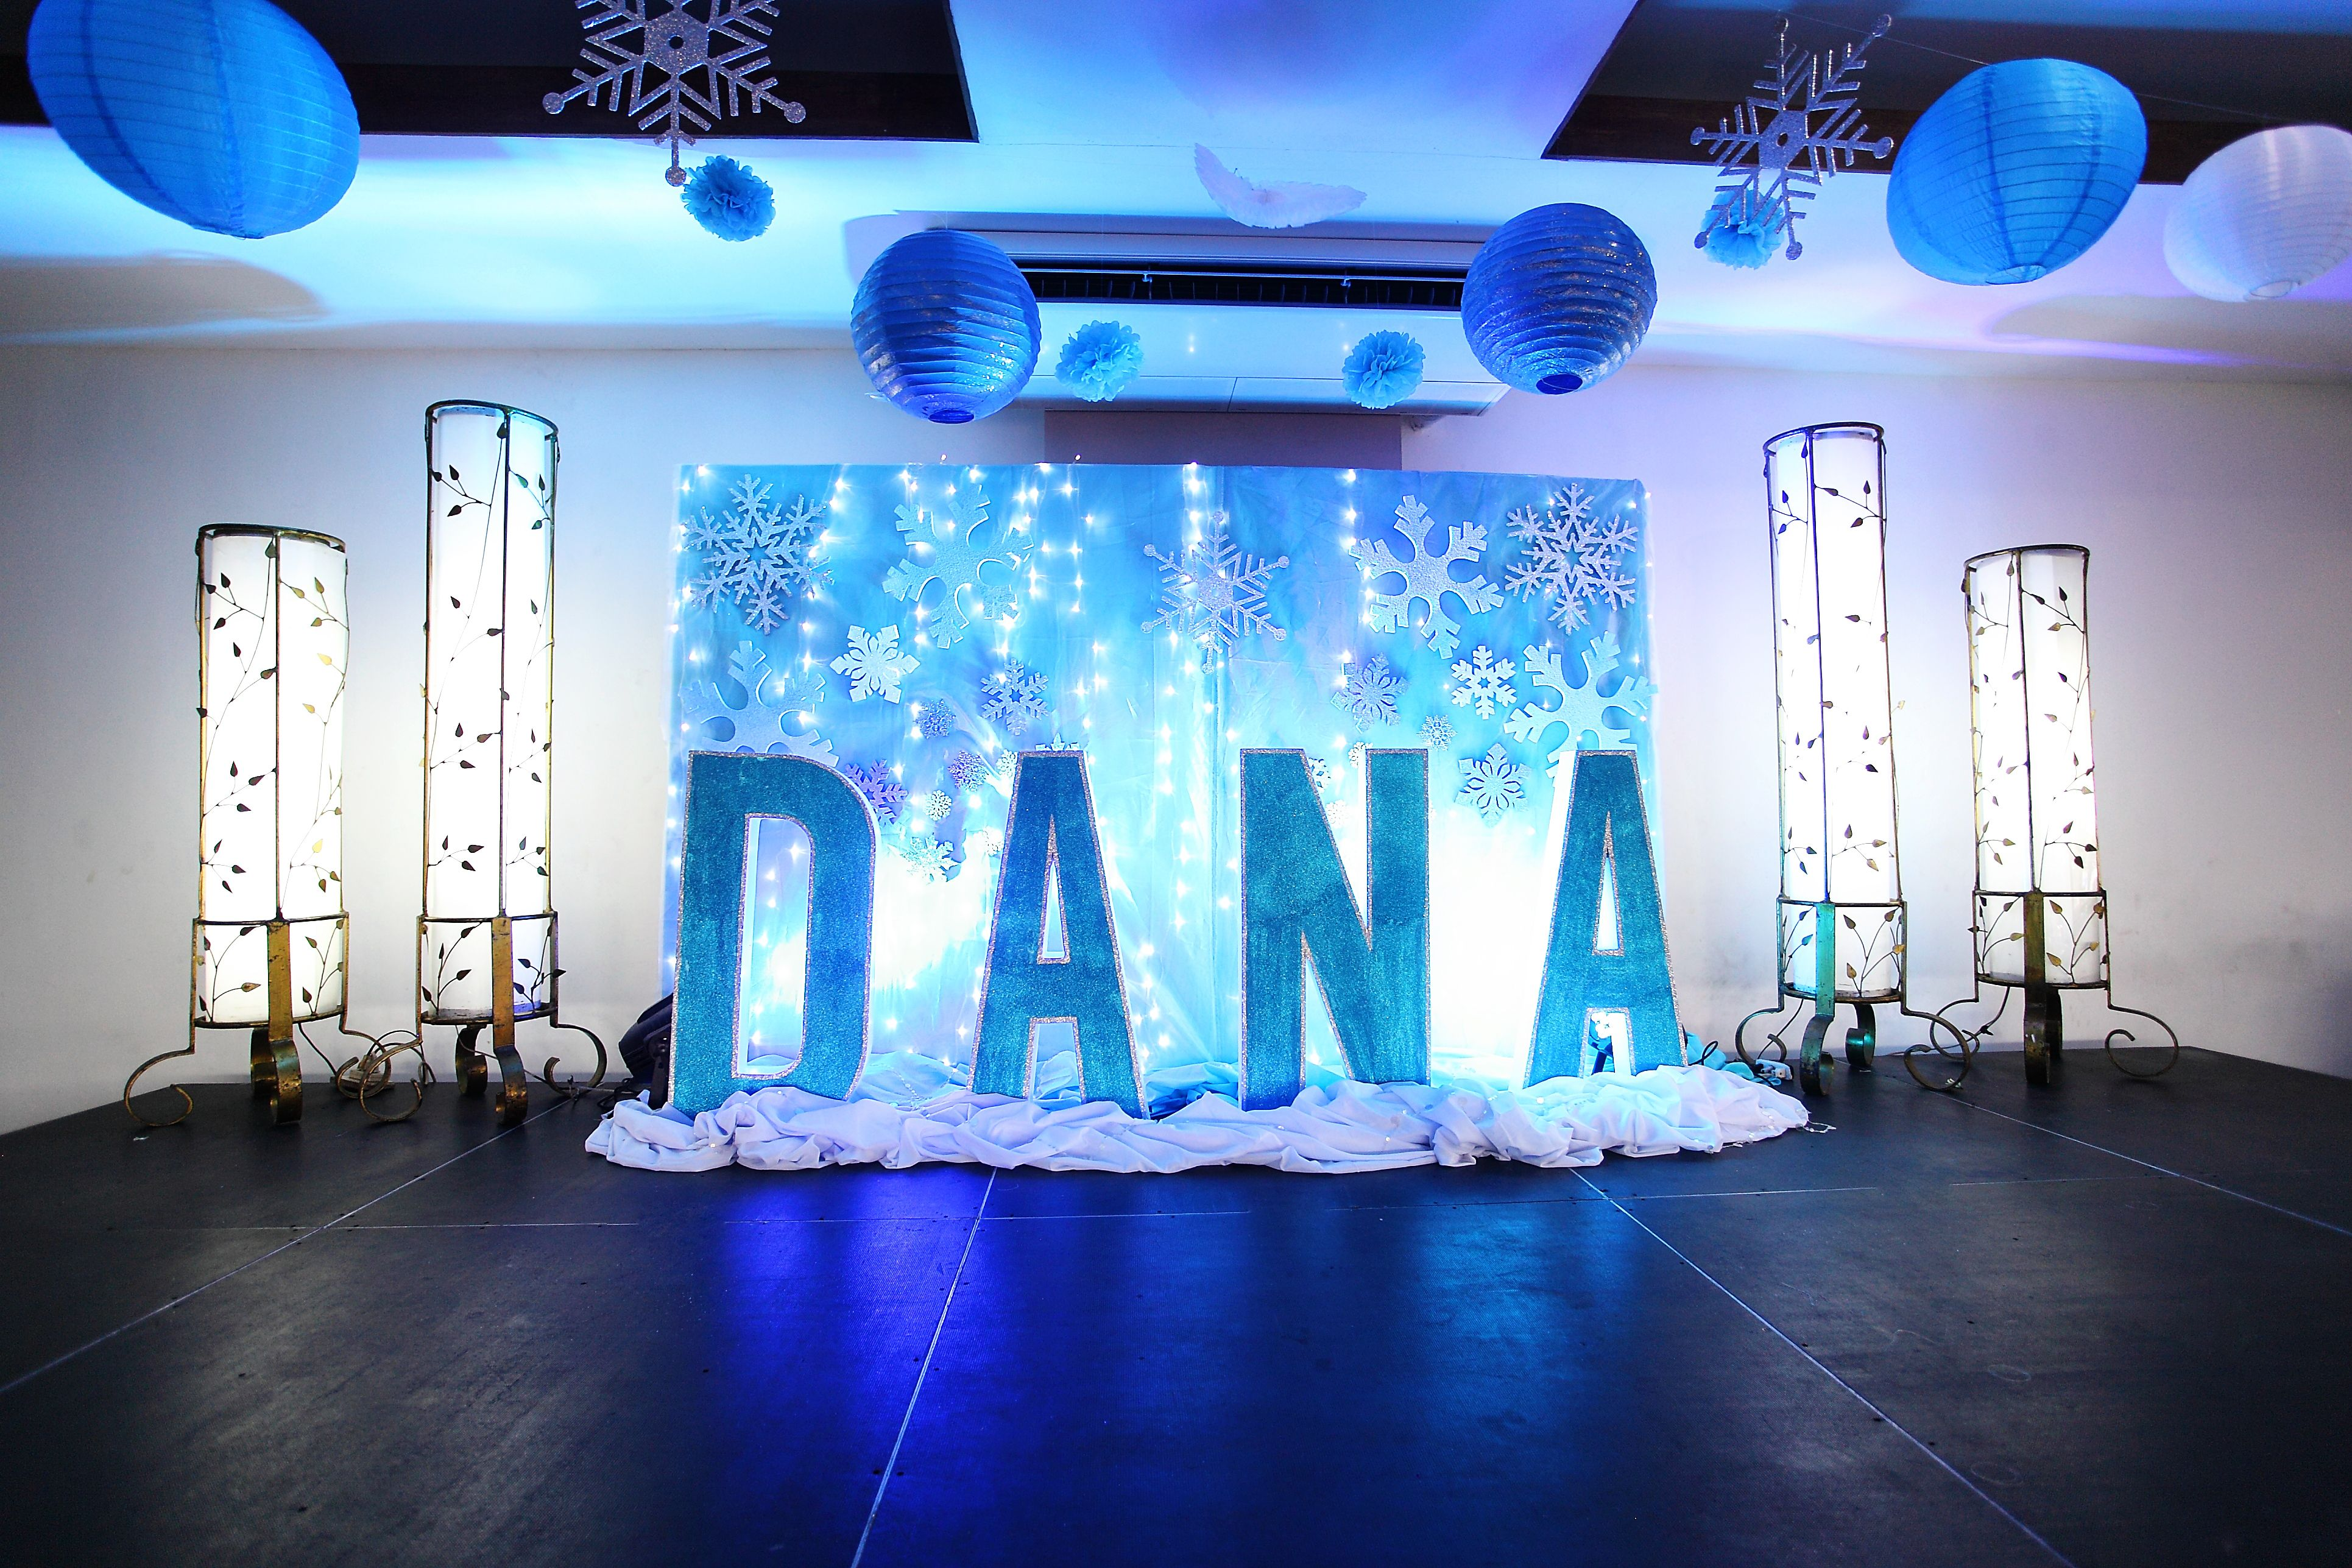 Winterthemed stage design Letter standees with a snowflakesfilled